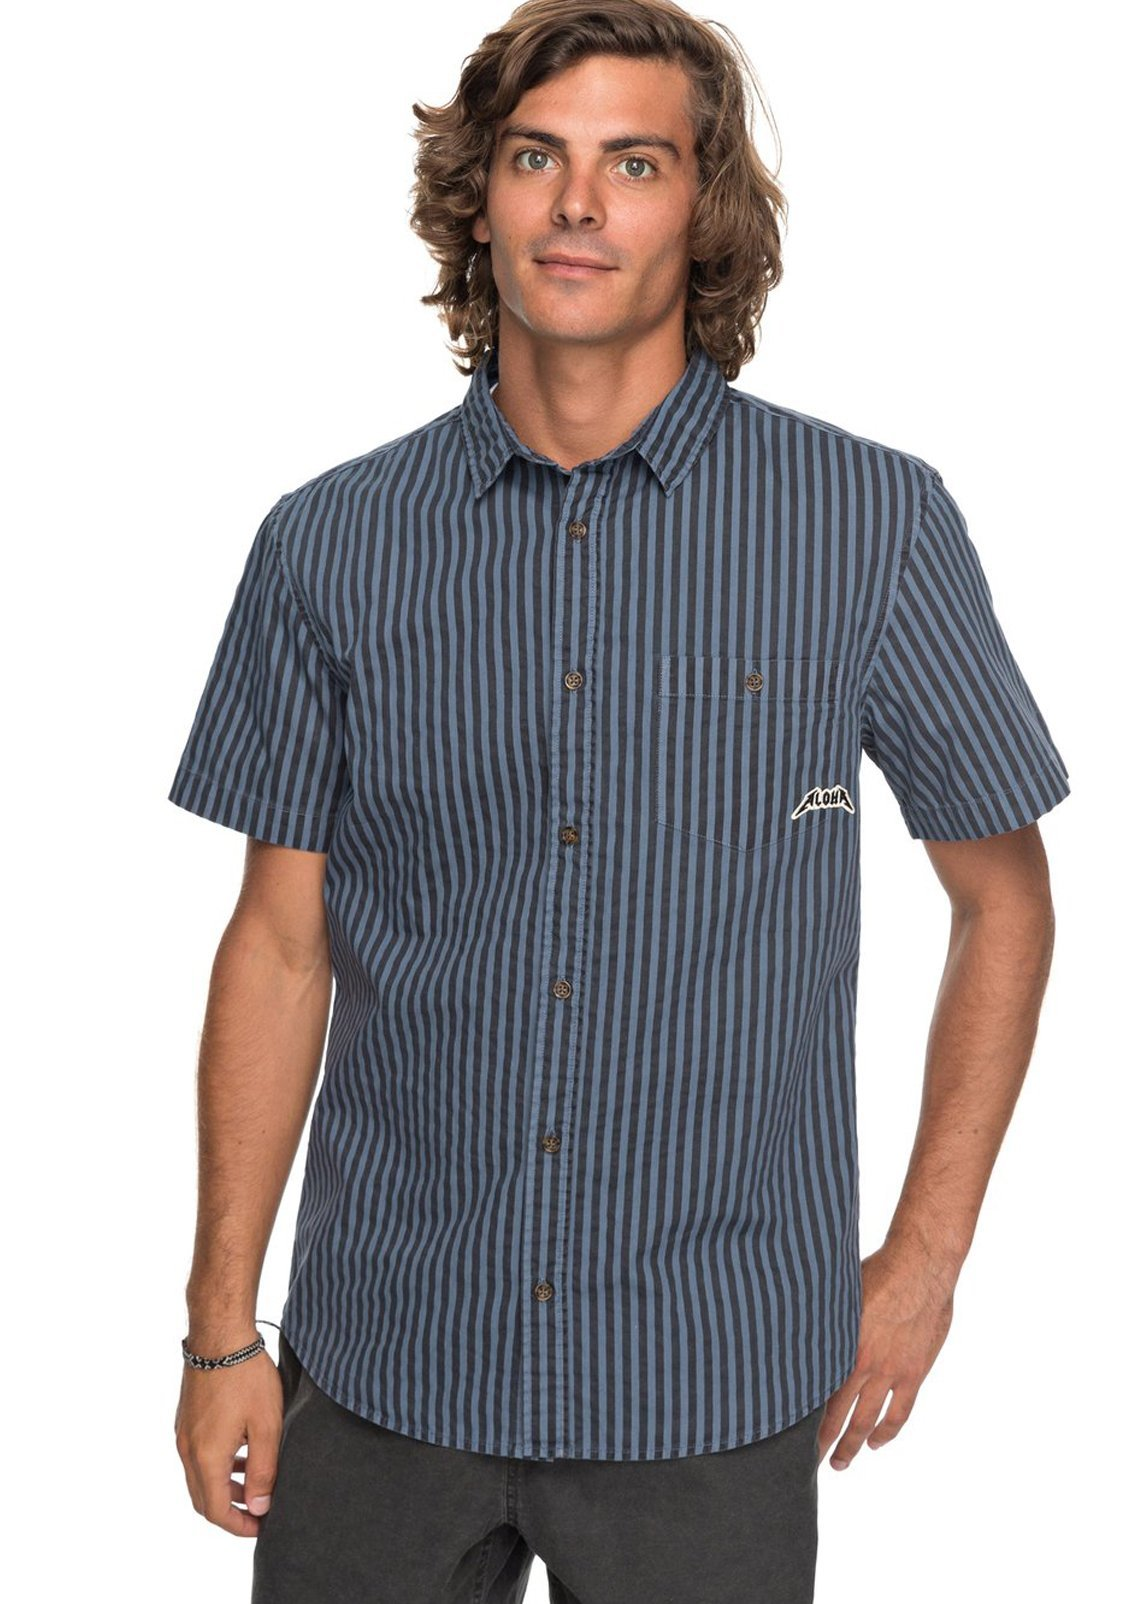 Bro Stripe S/S Shirt